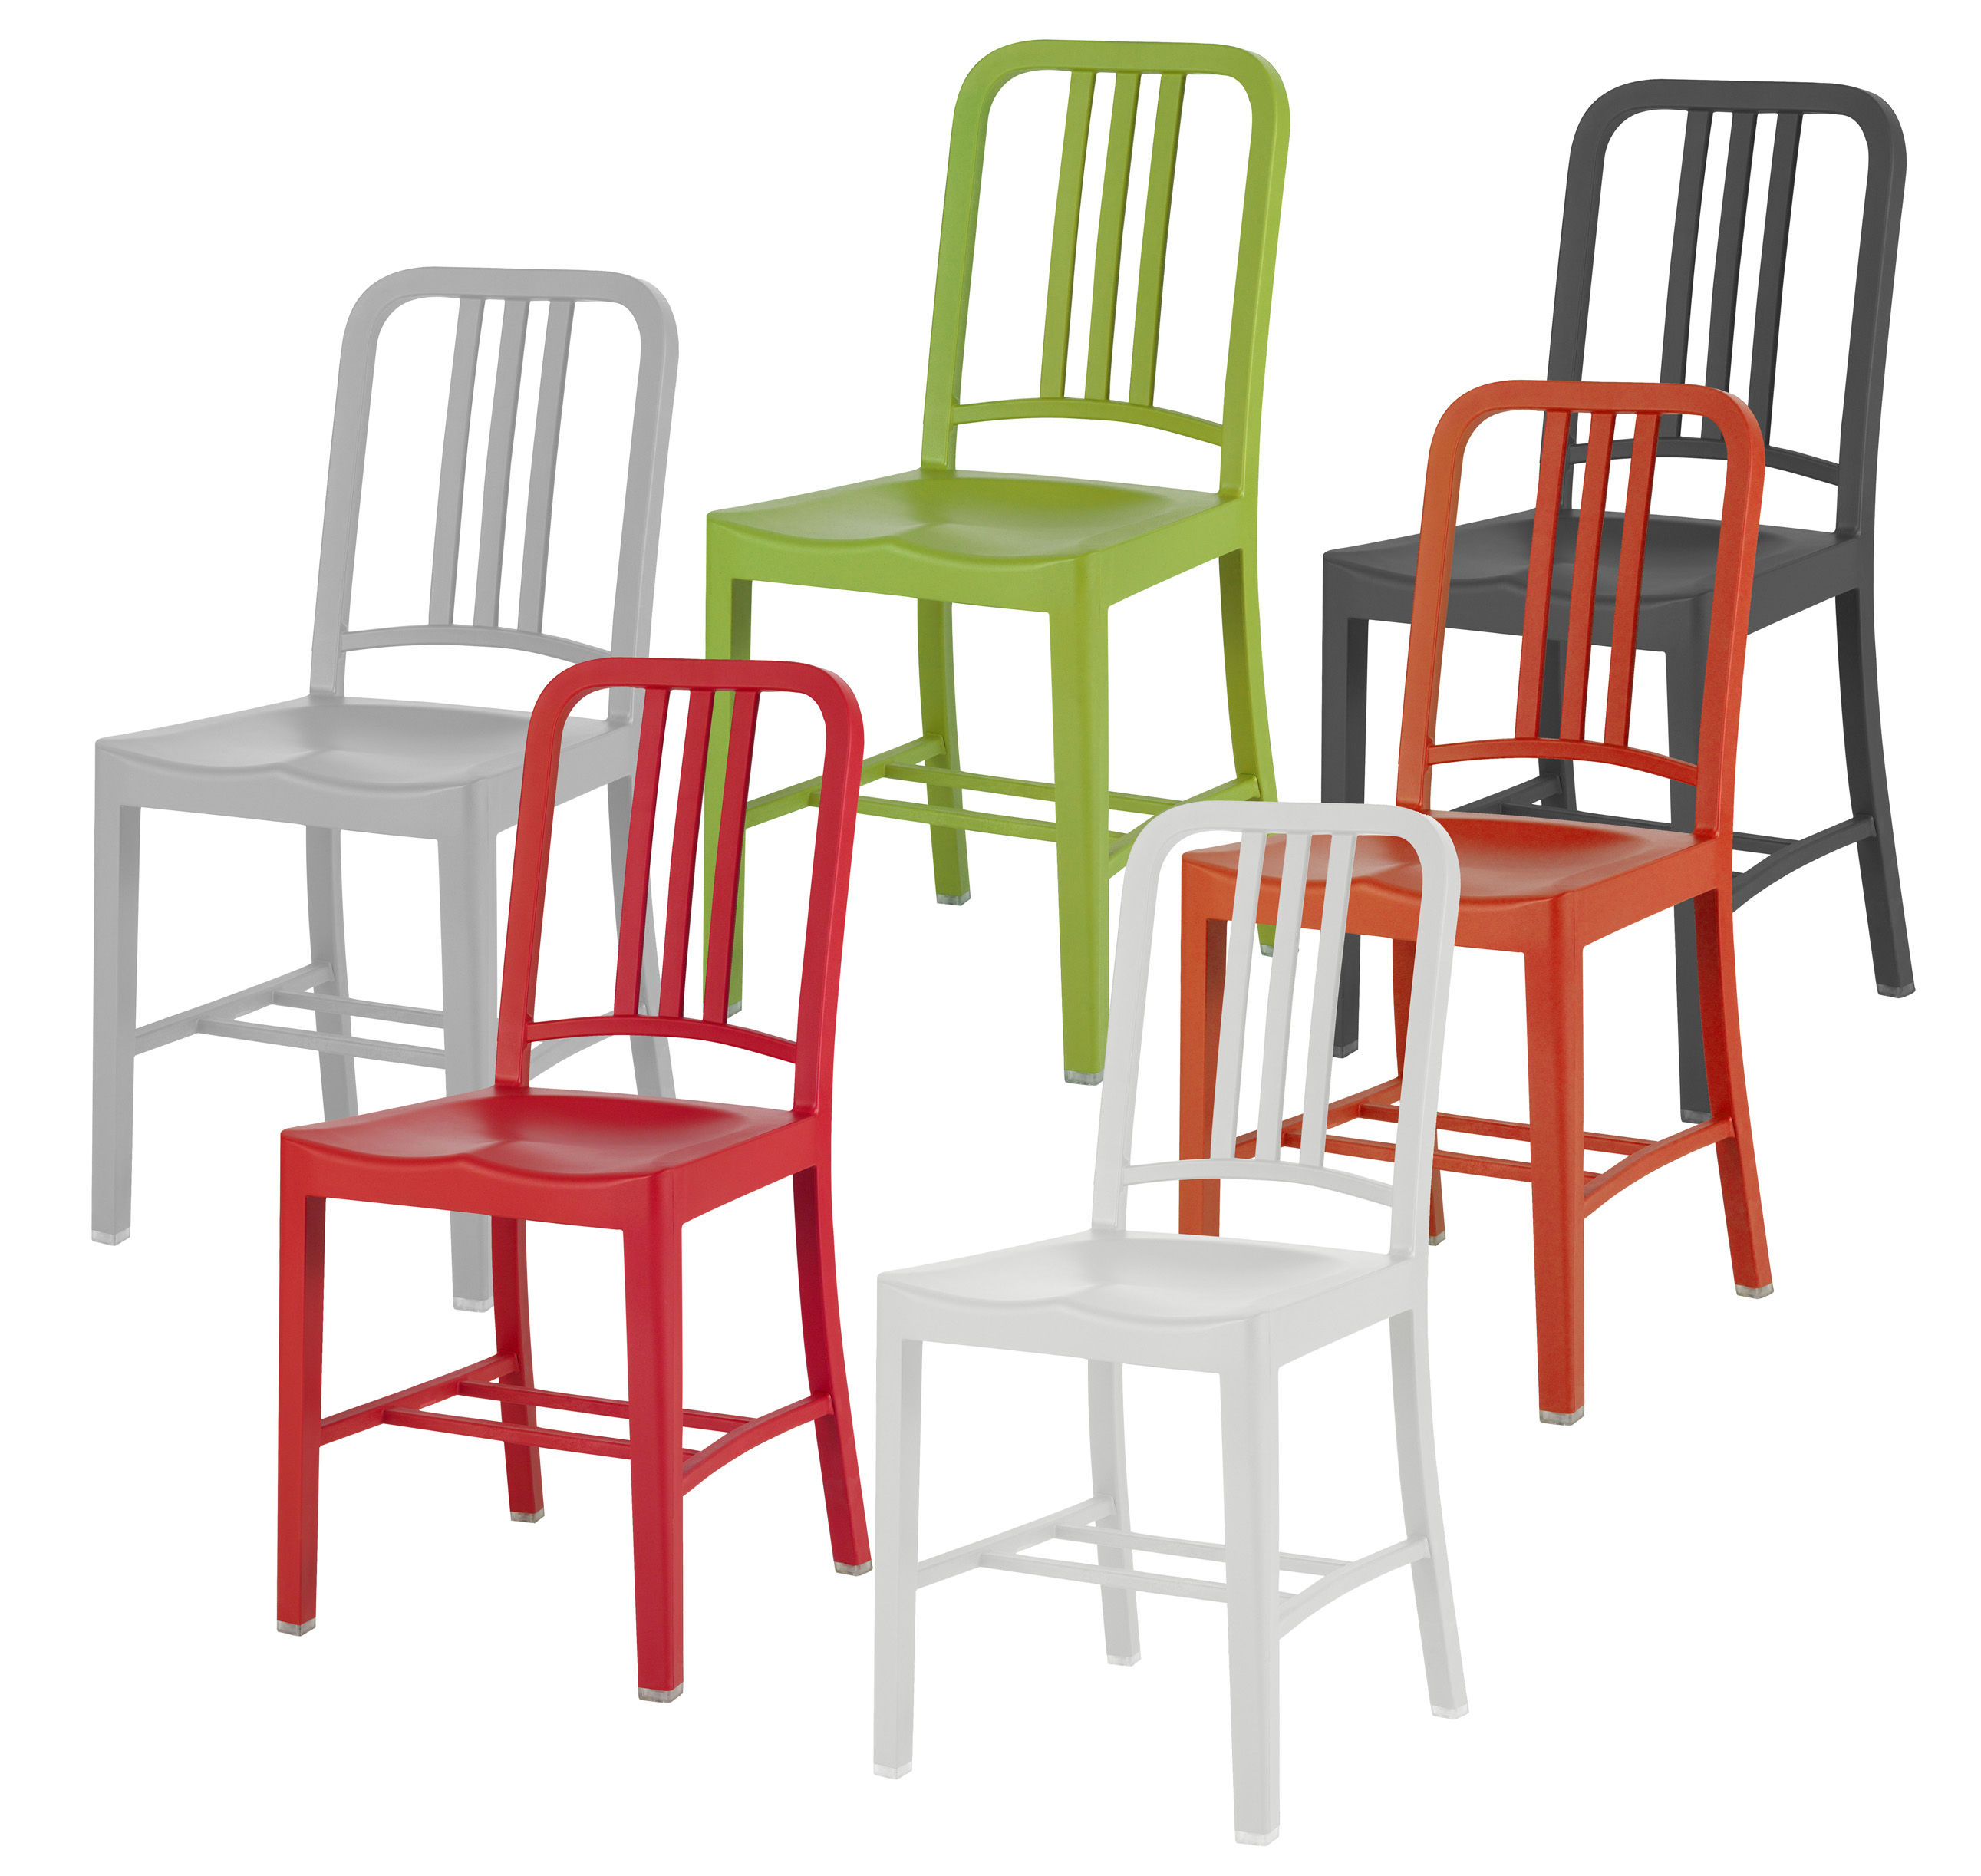 111 Navy Chair Outdoor Chair   Recycled Plastic Flint Grey By Emeco | Made  In Design UK